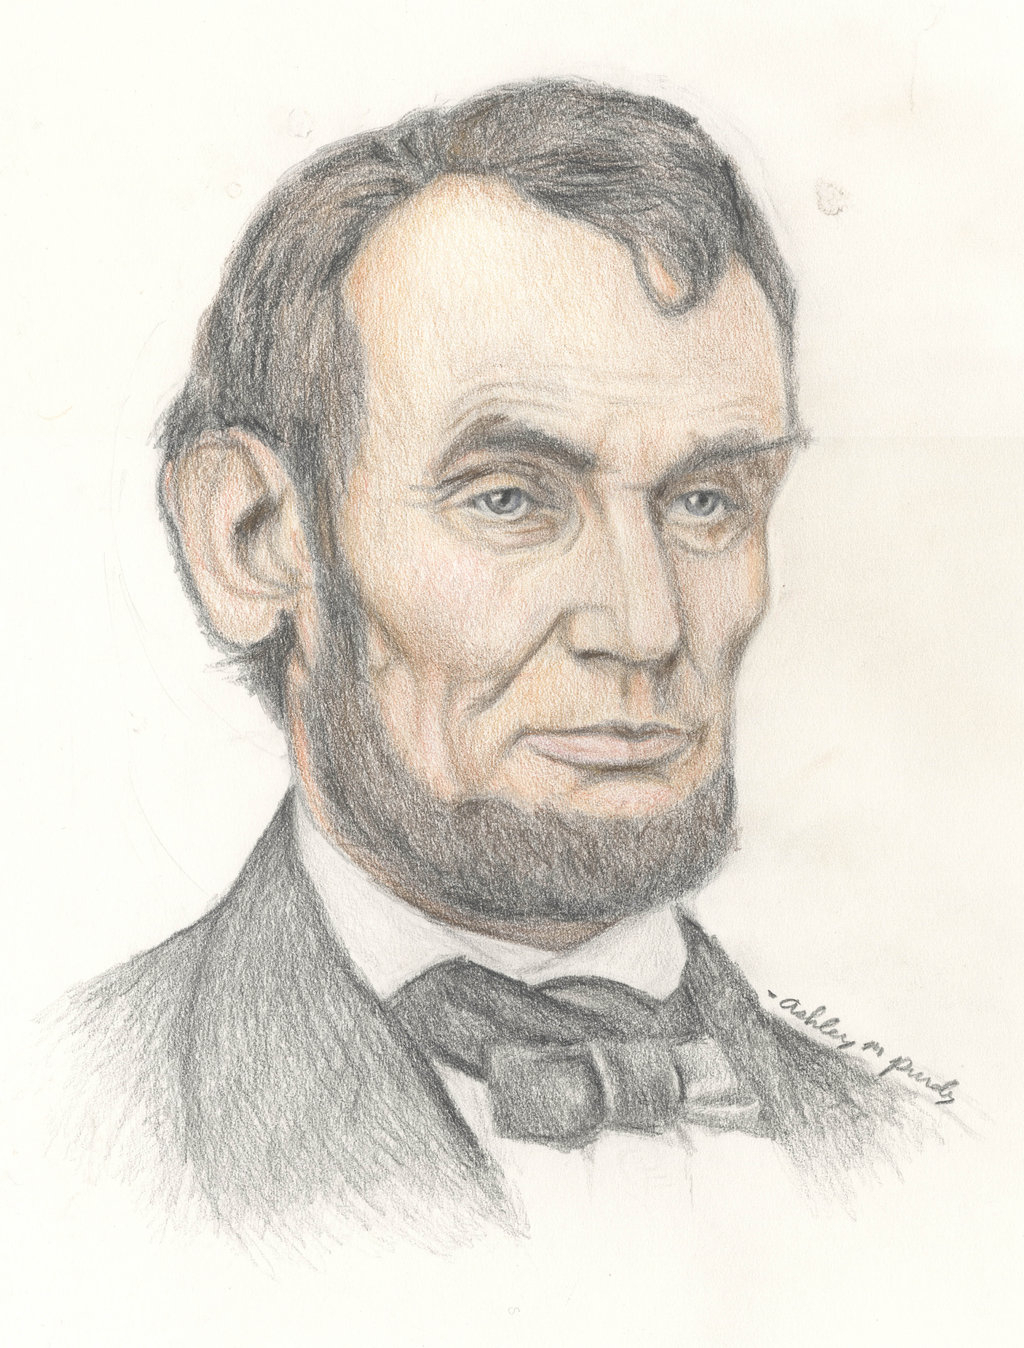 1024x1348 Abraham Lincoln Drawing Pencil Drawings Abraham Lincoln Pencil